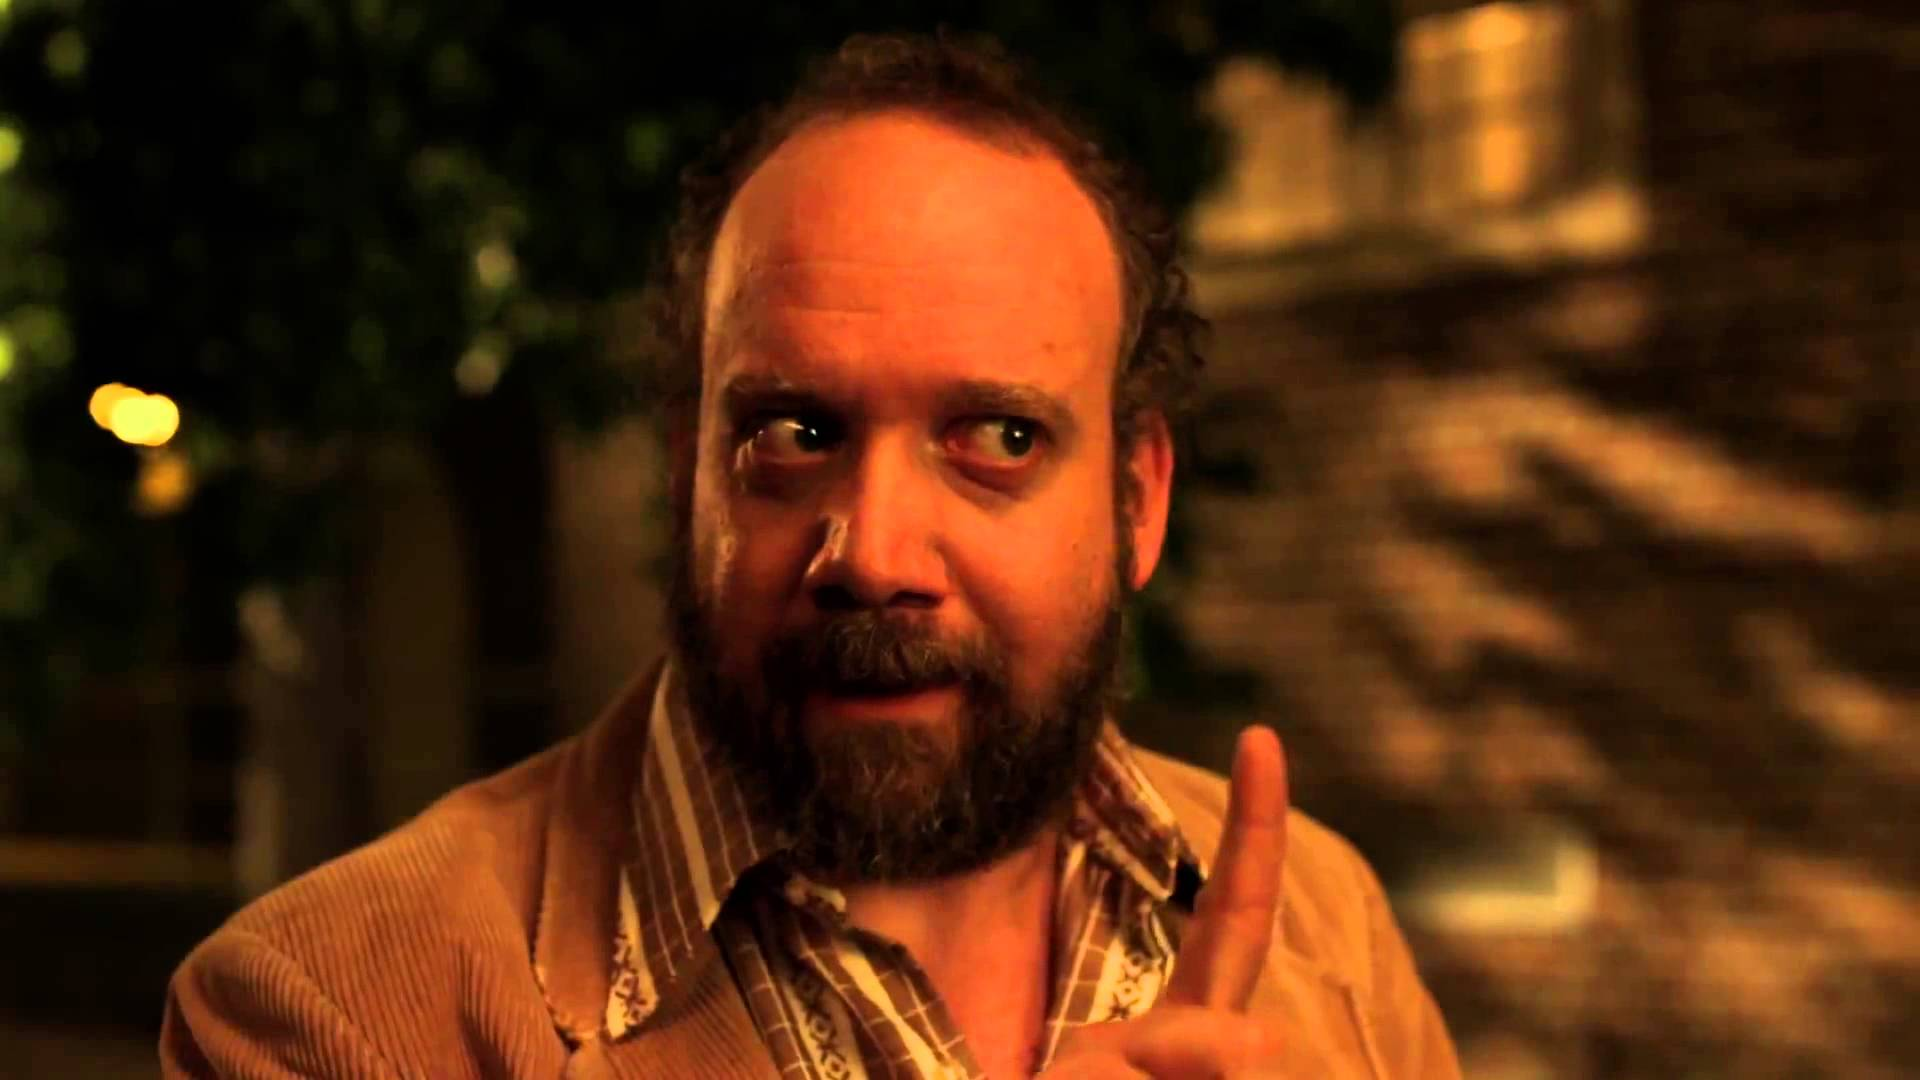 Pictures of Paul Giamatti